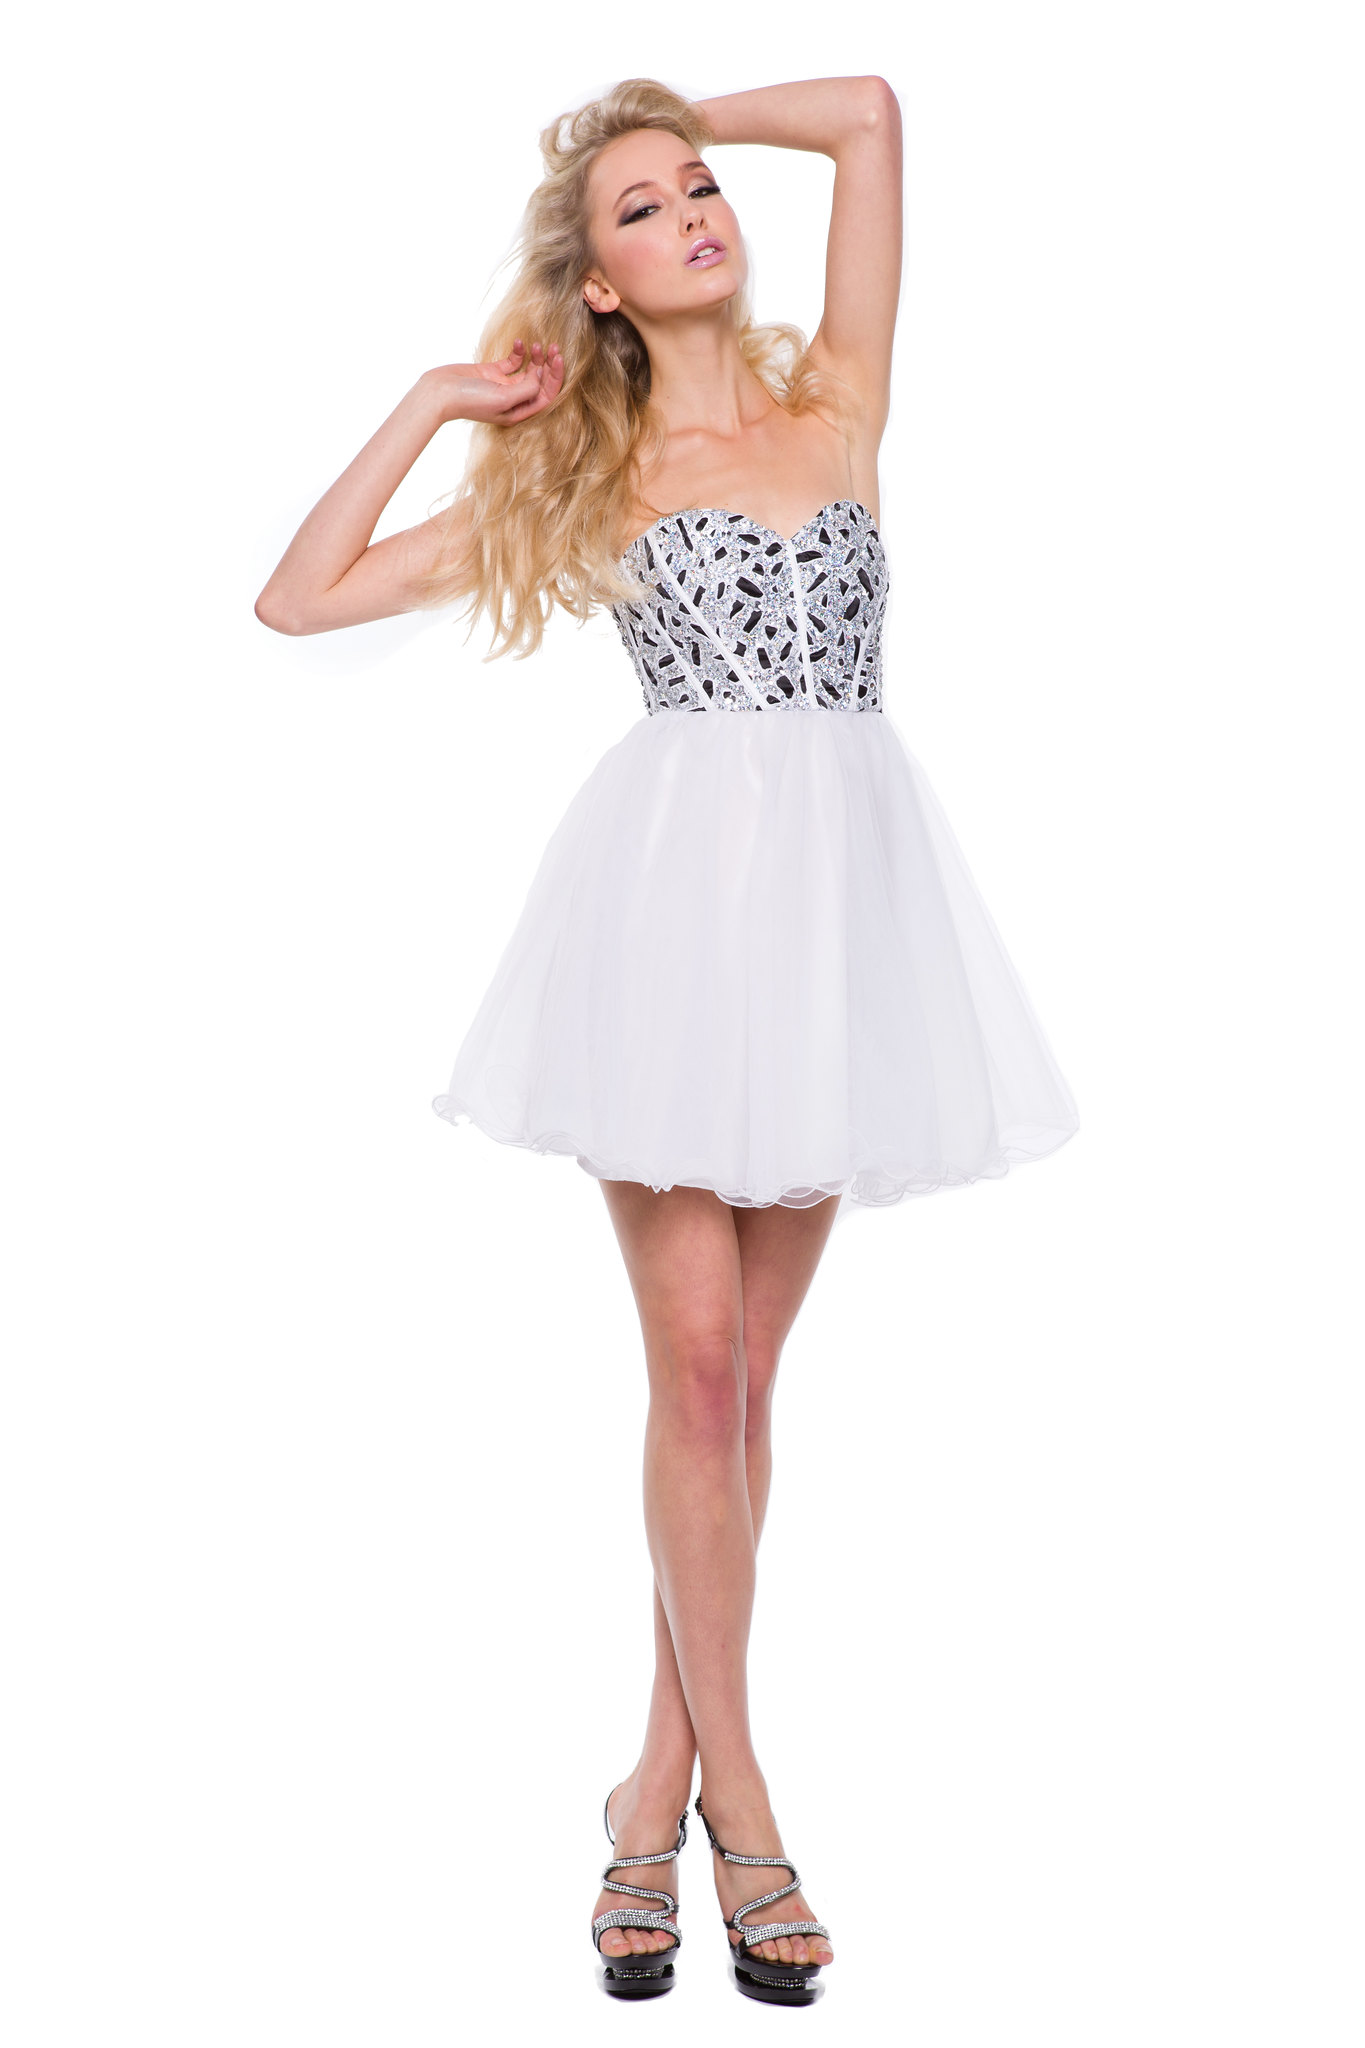 SHORT FITTED CORSET BODICE PROM DRESS COCKTAIL HOMECOMING WINTER FORMAL PAGEANT  eBay